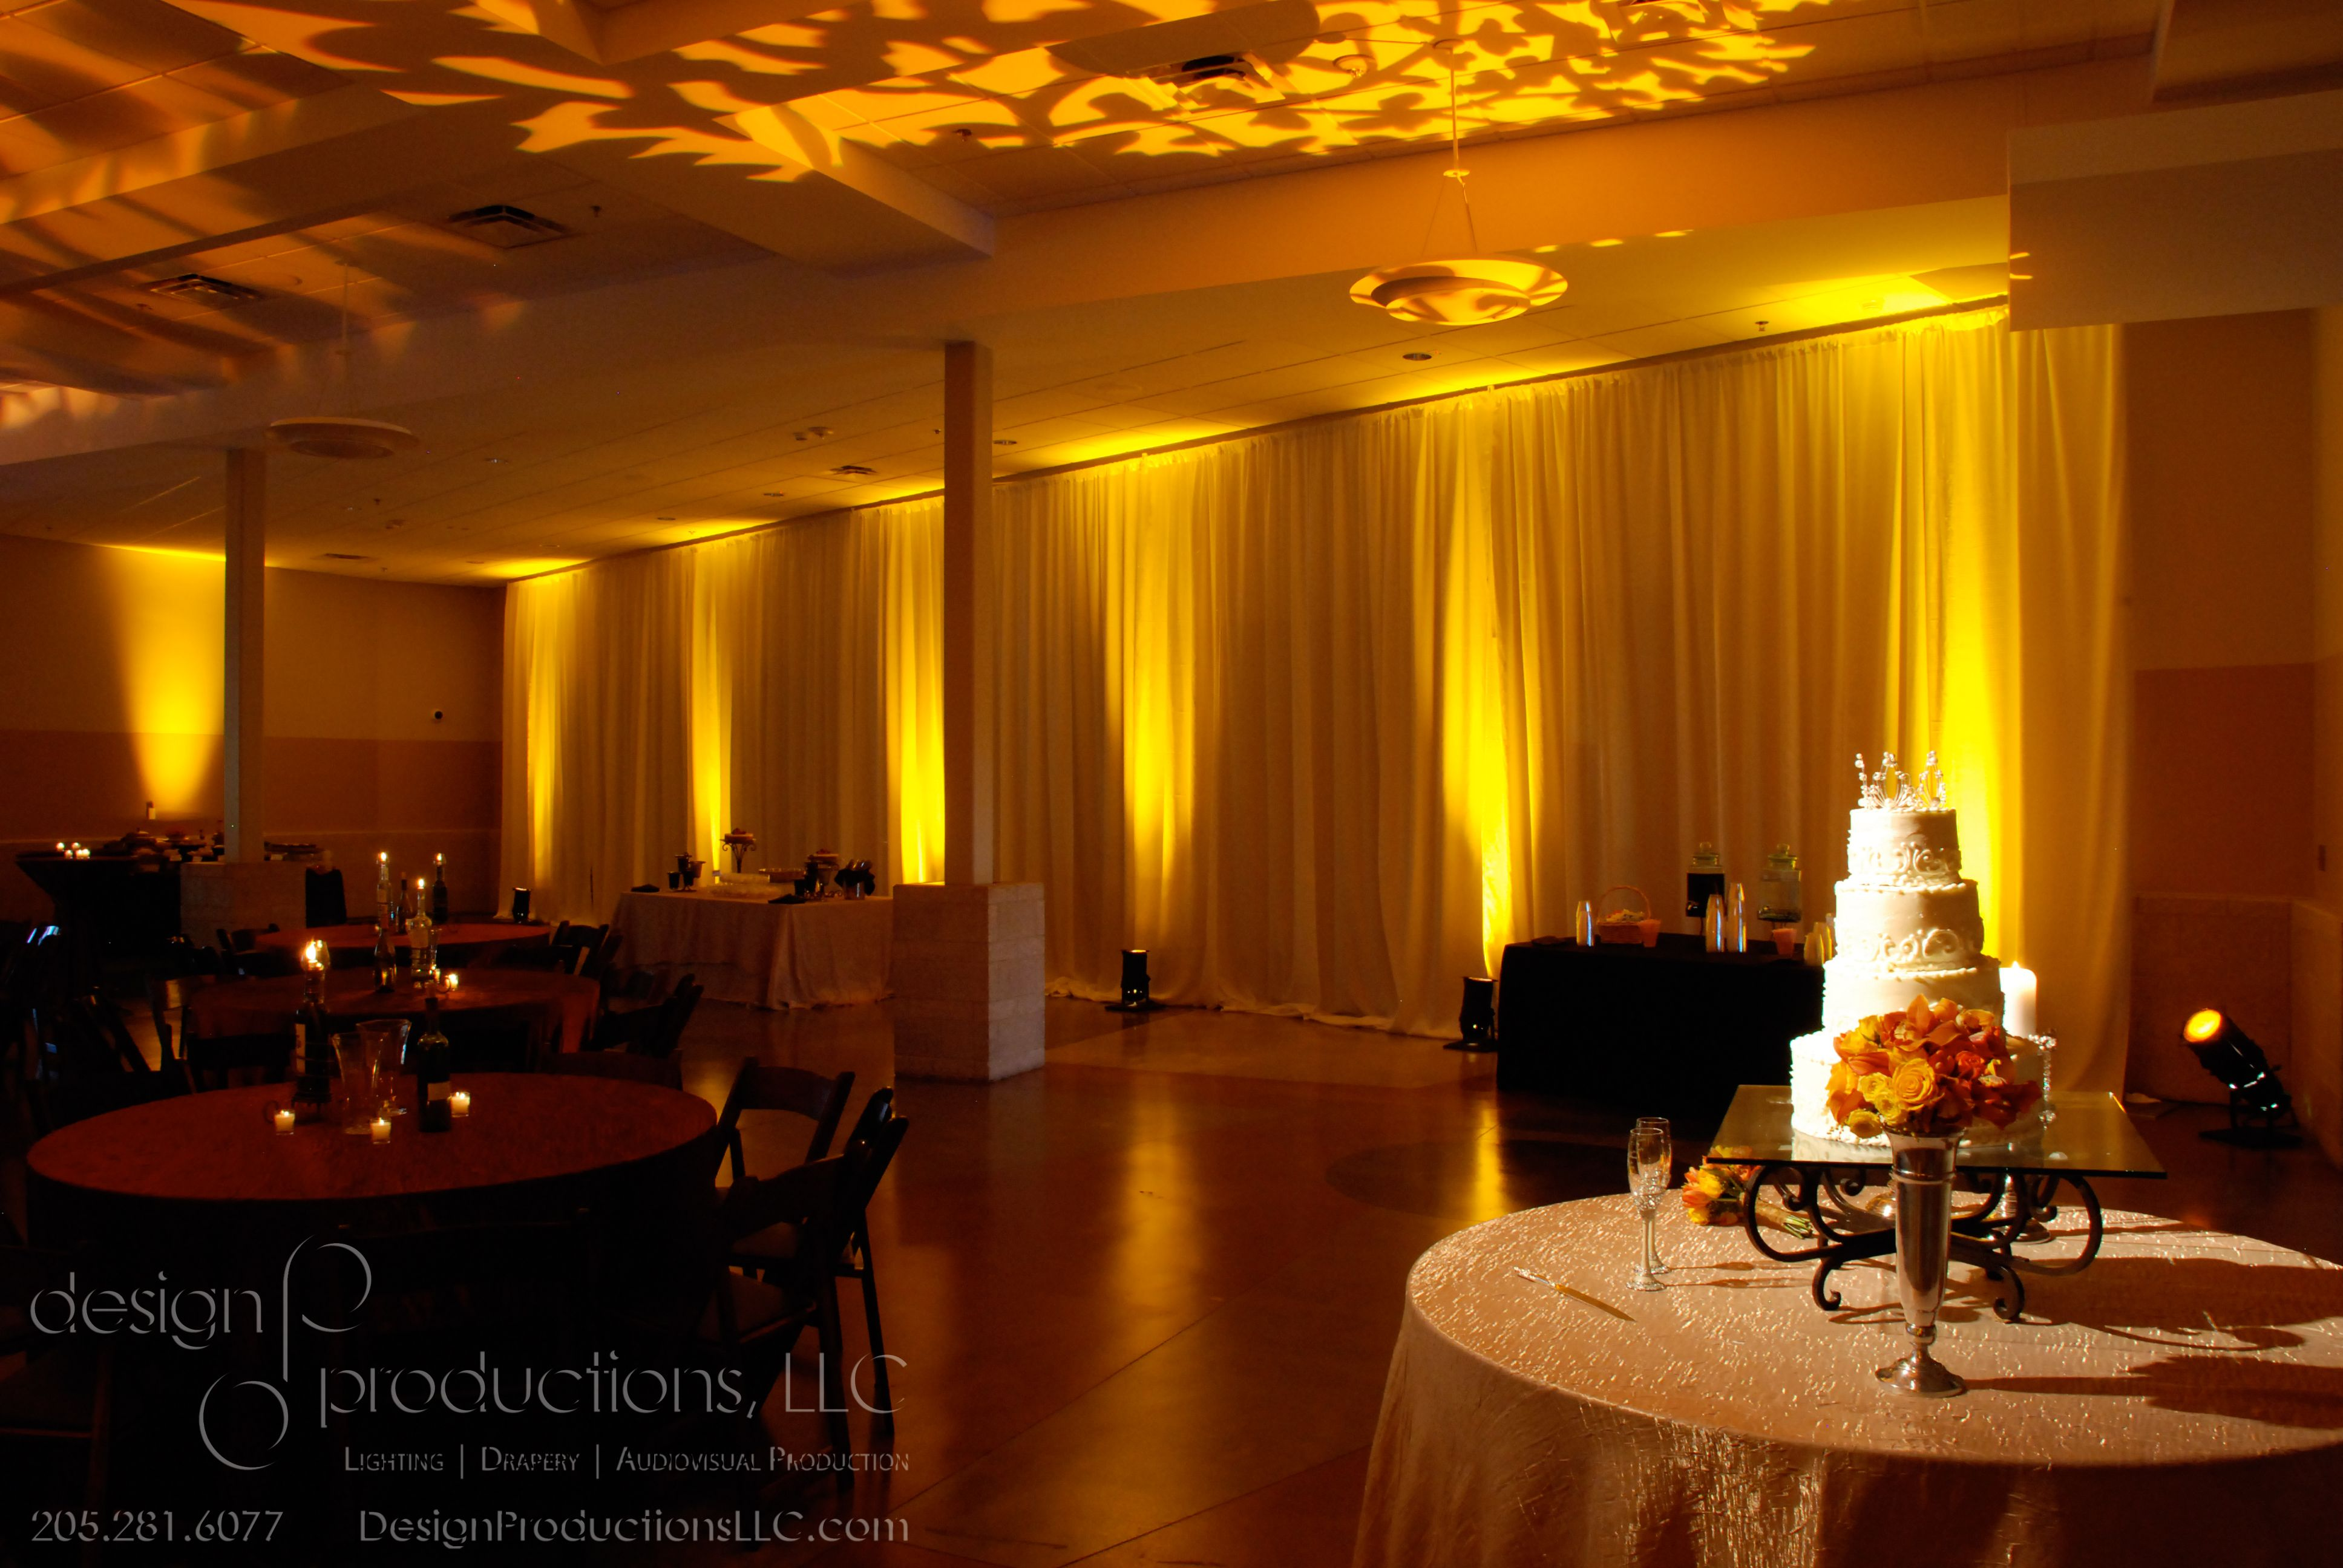 Lighting By Design Productions D With Amber Uplights And Ceiling Abstracts Fabulous Wedding Linens Pinterest